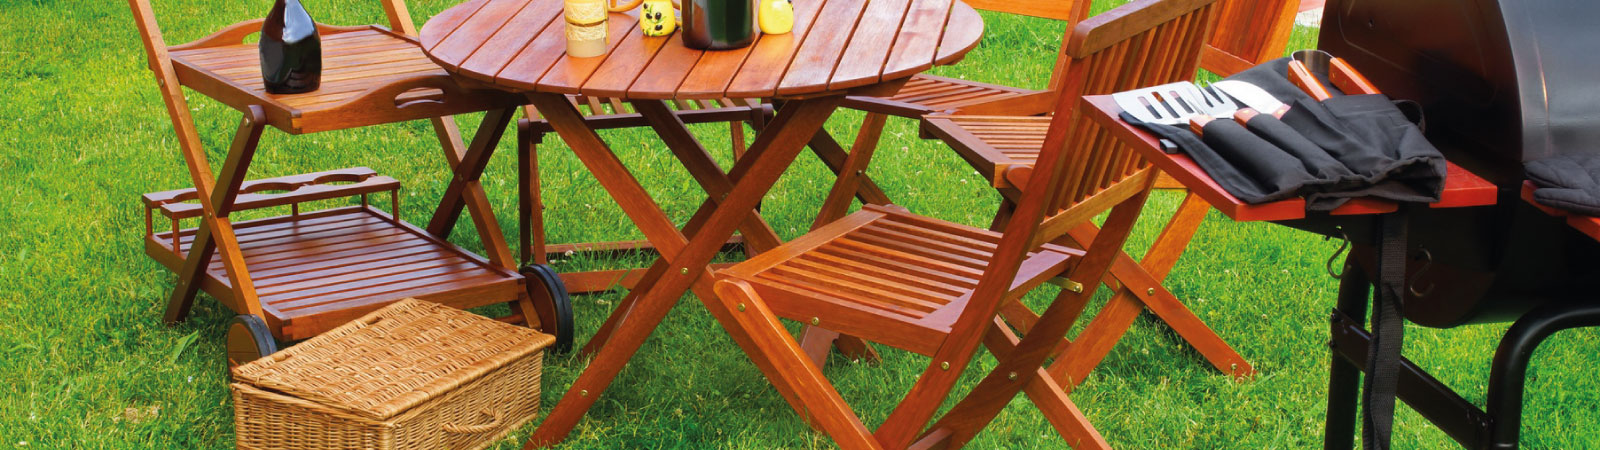 outdoor-furniture-flatpack-assembly-service